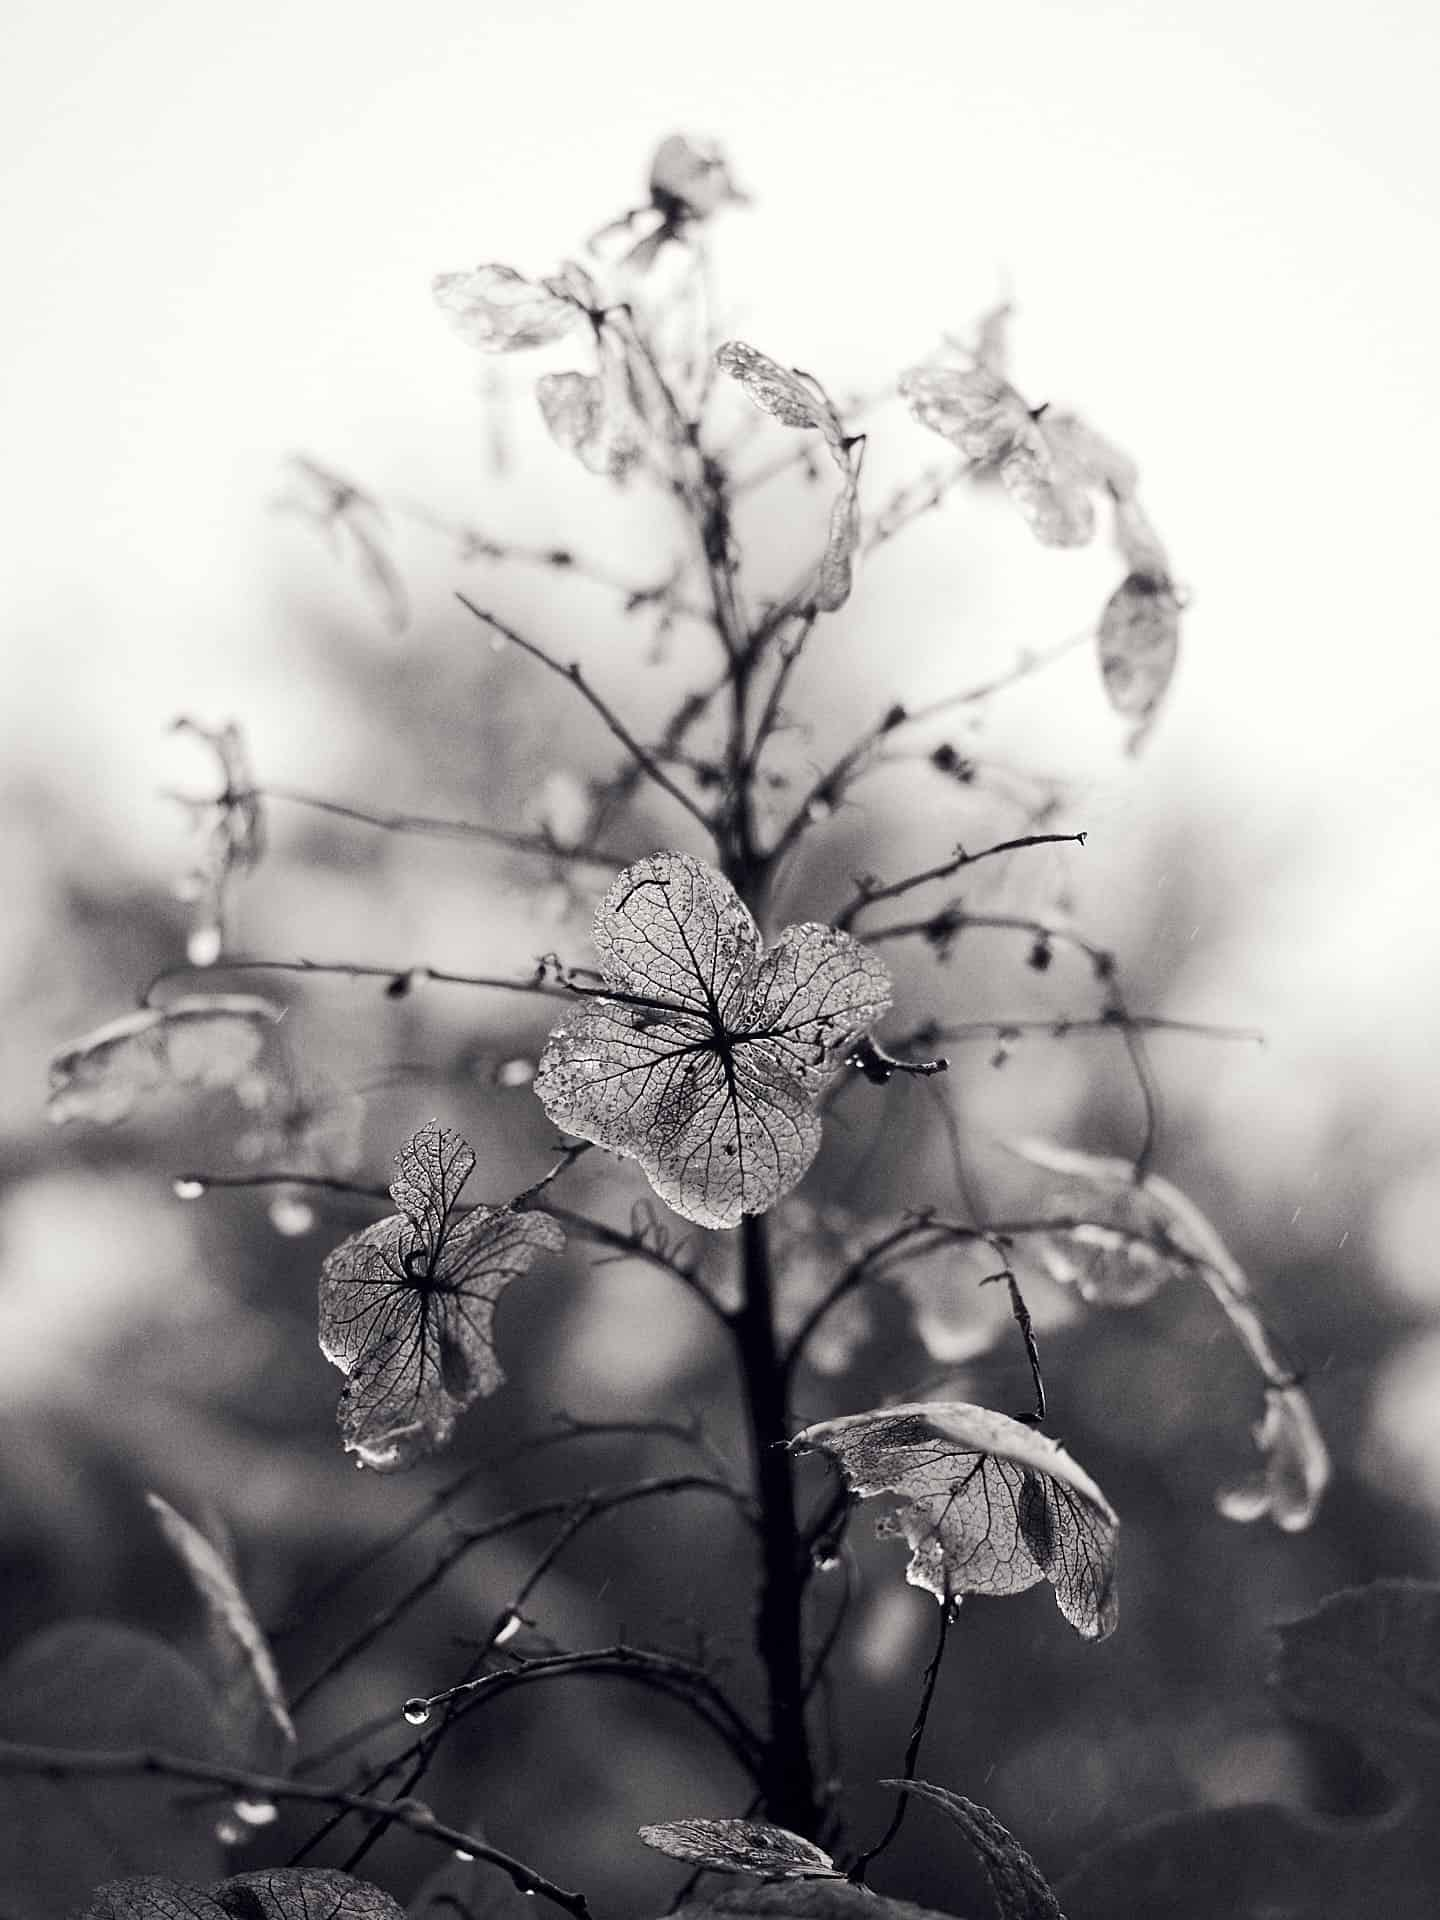 The last oak leaf hydrangea bloom during a winter rain storm